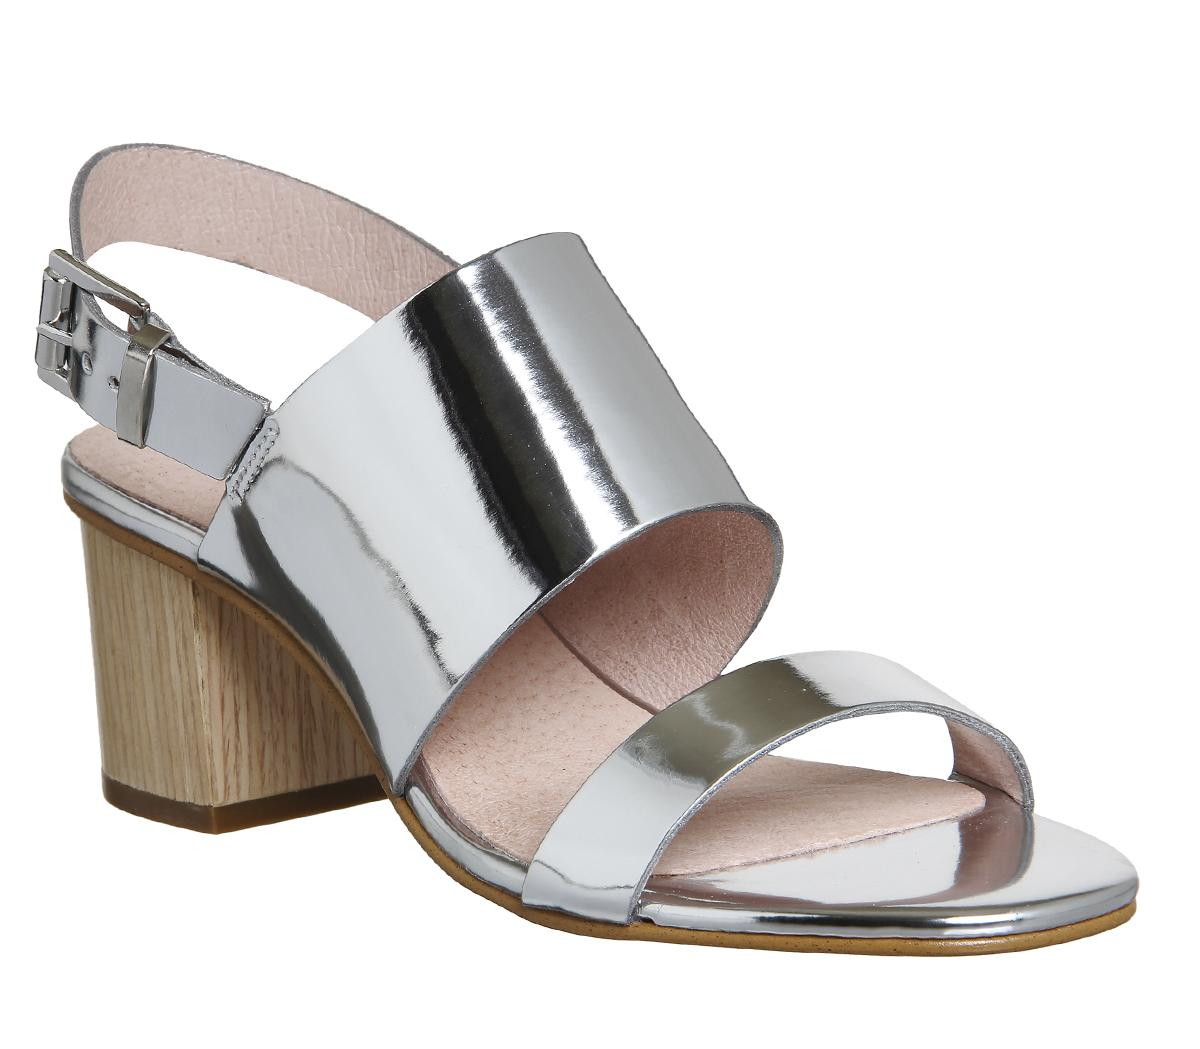 Meadow Block Heel Slingback Sandals